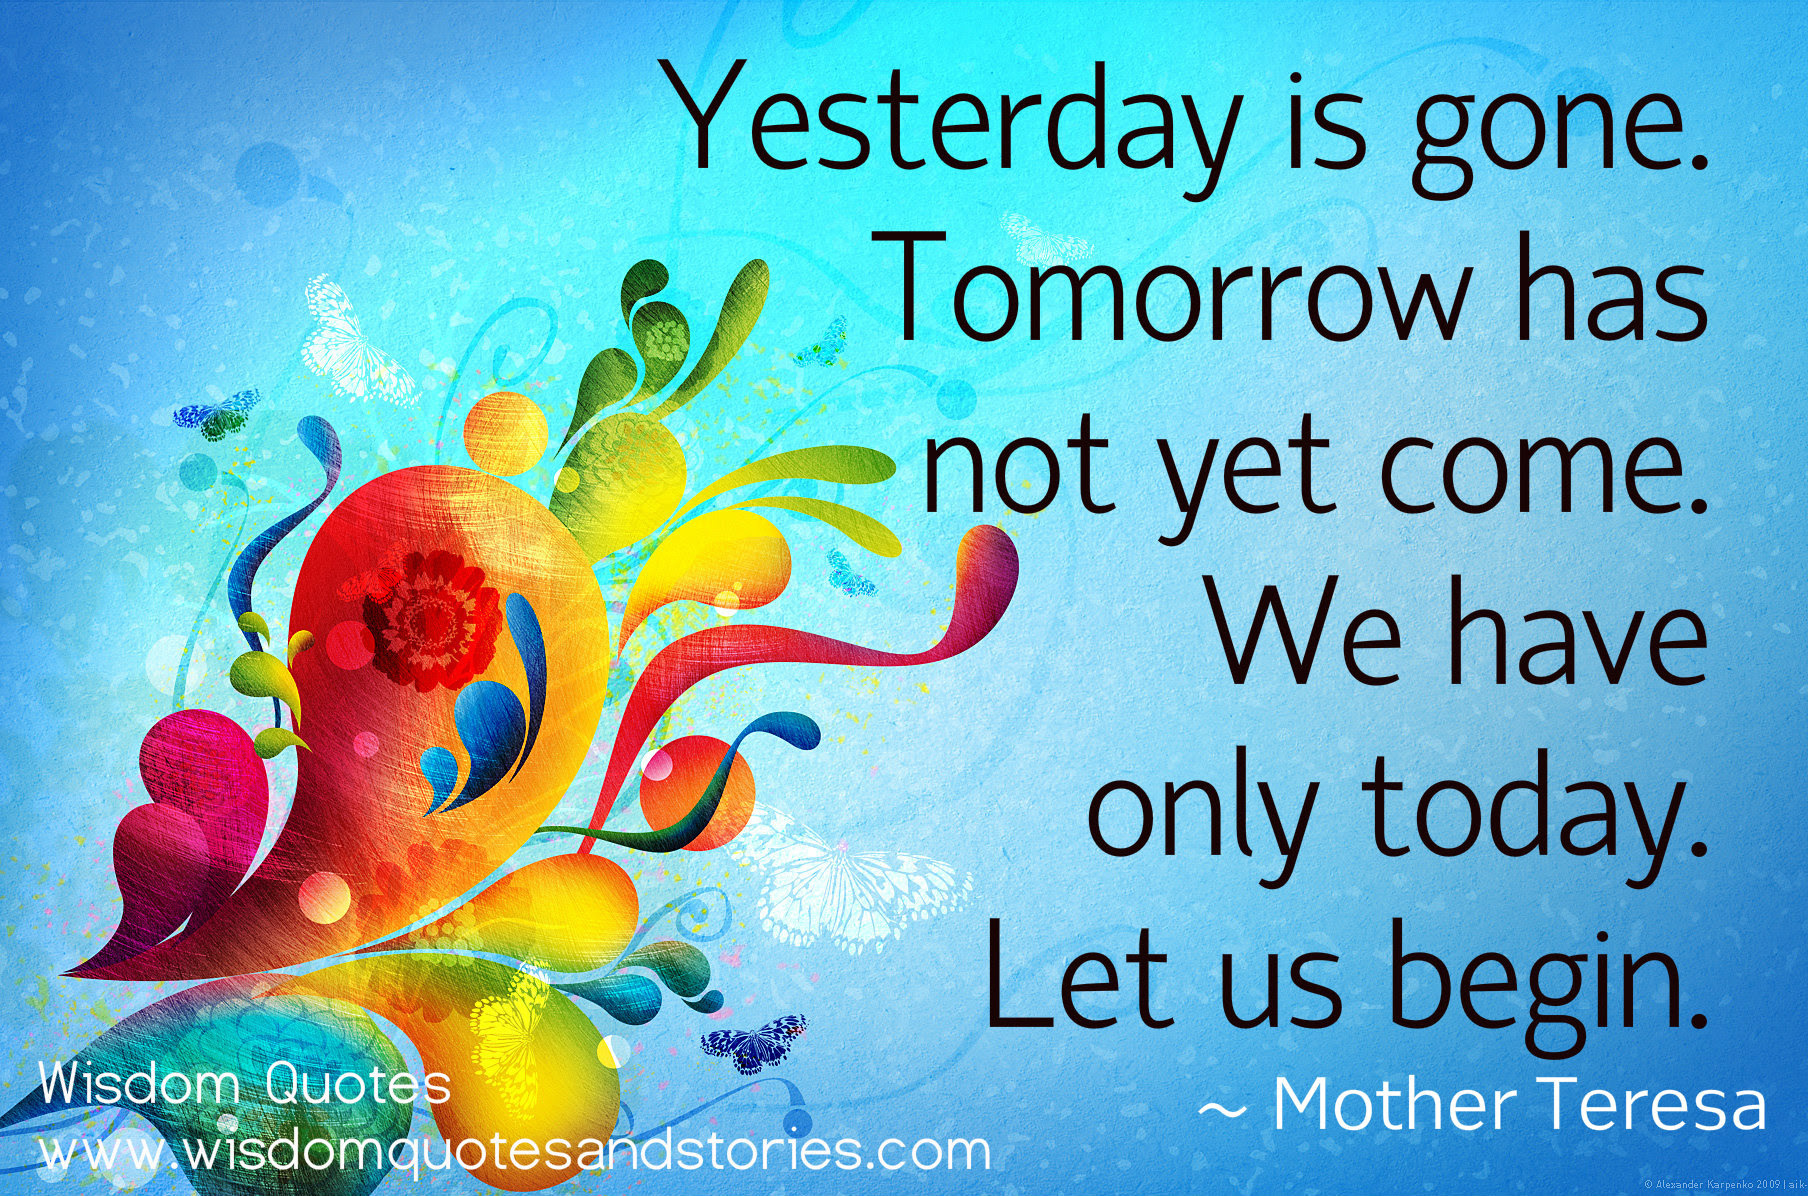 We Have Only Today Let Us Begin Wisdom Quotes Stories